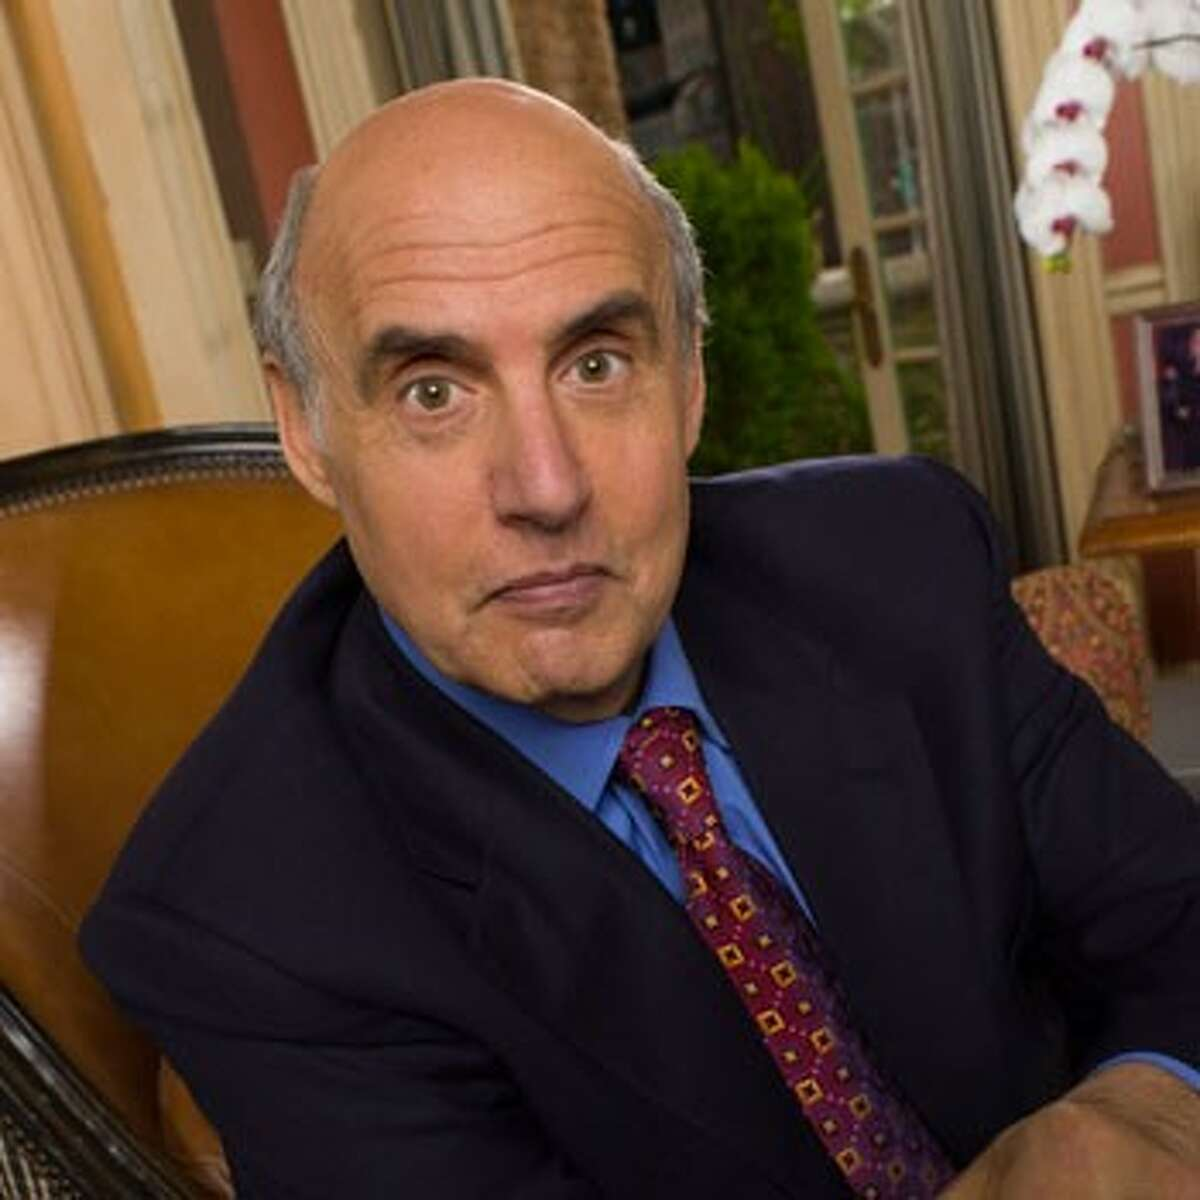 Jeffrey Tambor will appear at the River Oaks Country Club on Wednesday, Nov. 6 during the Treasures of Texas Gala.